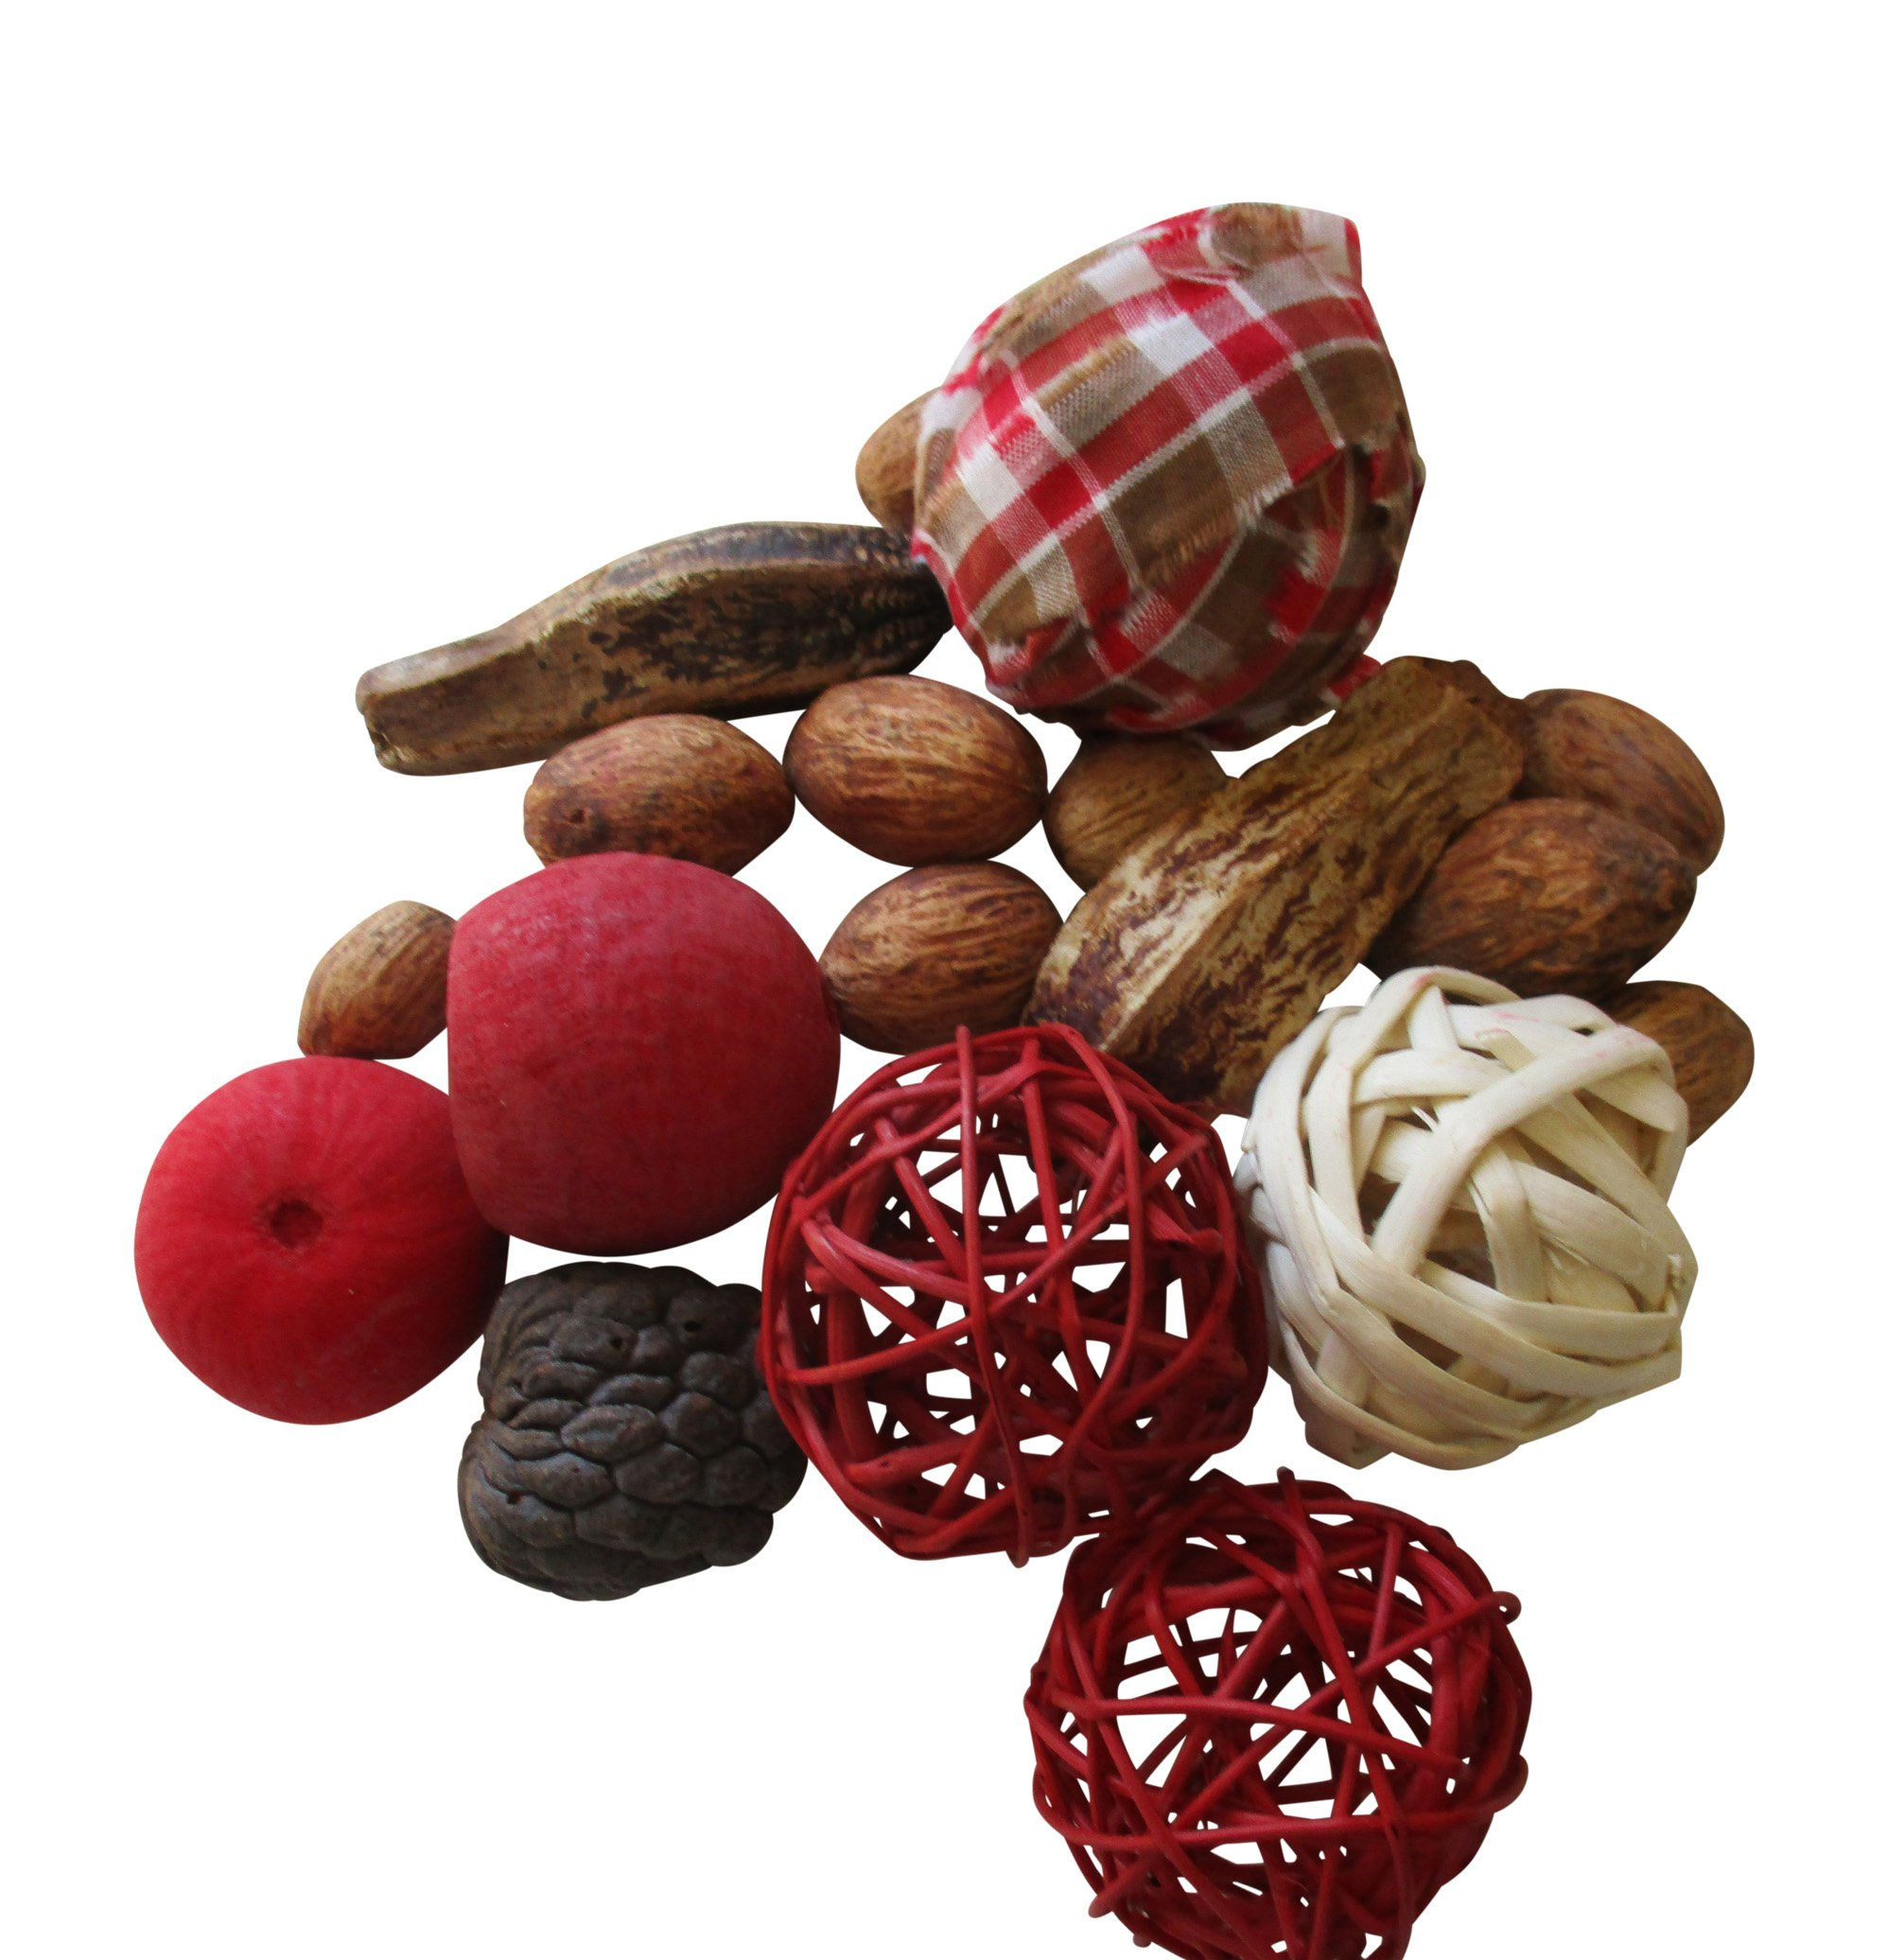 From The Attic Crafts Rag Ball, Twig Balls, Pods, Seeds Bowl Filler Set Red and Tan 11 pieces